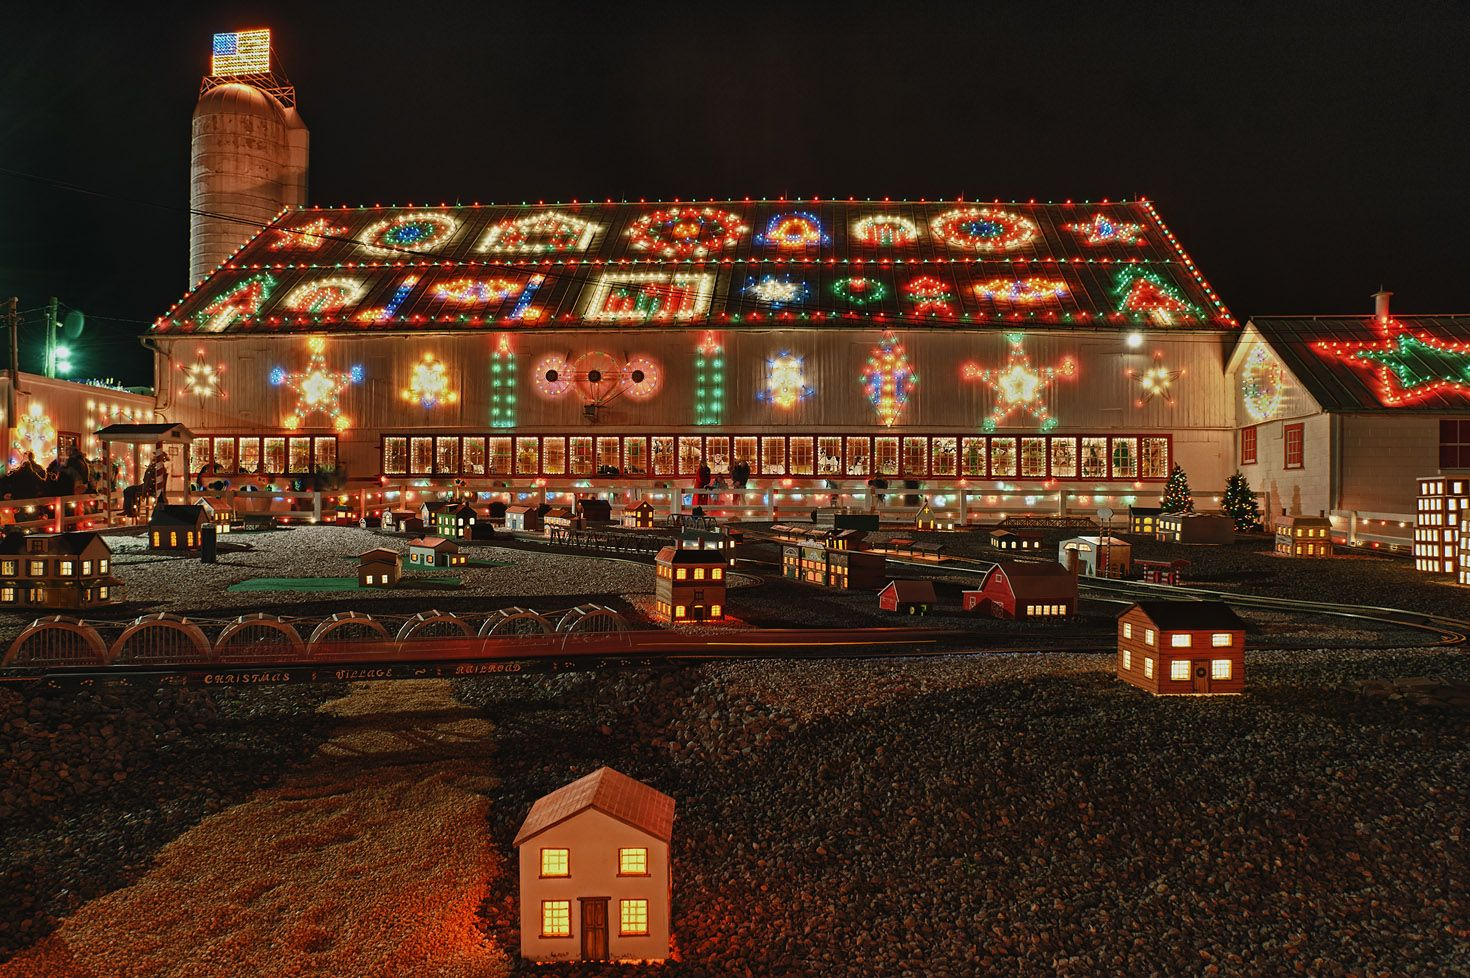 30 Best Christmas Towns in USA - Best Christmas Towns in America